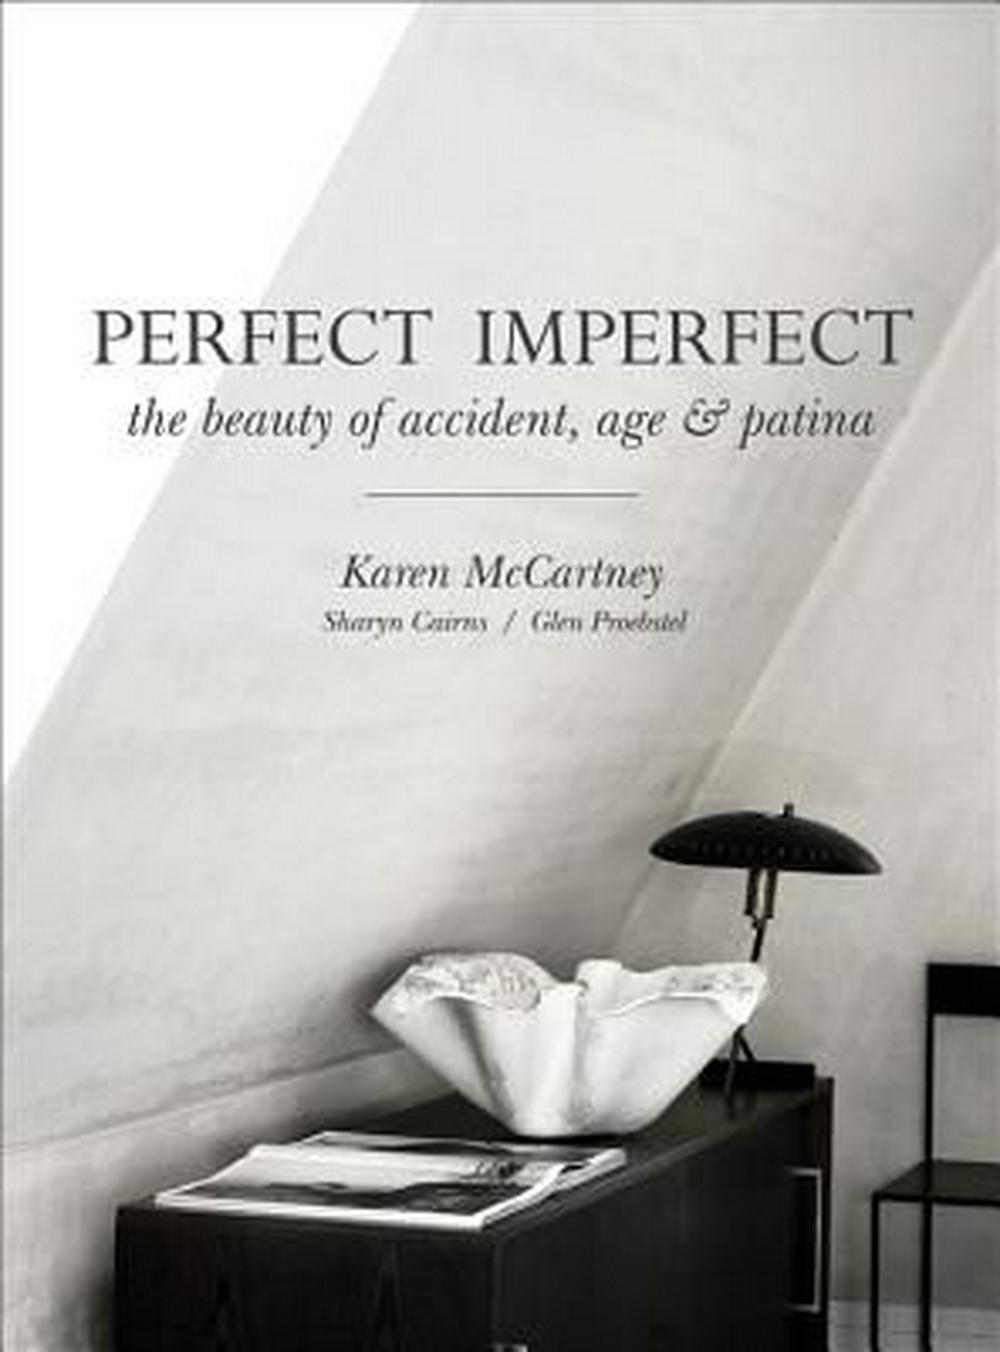 Perfect ImperfectThe Beauty of Accident, Age & Patina